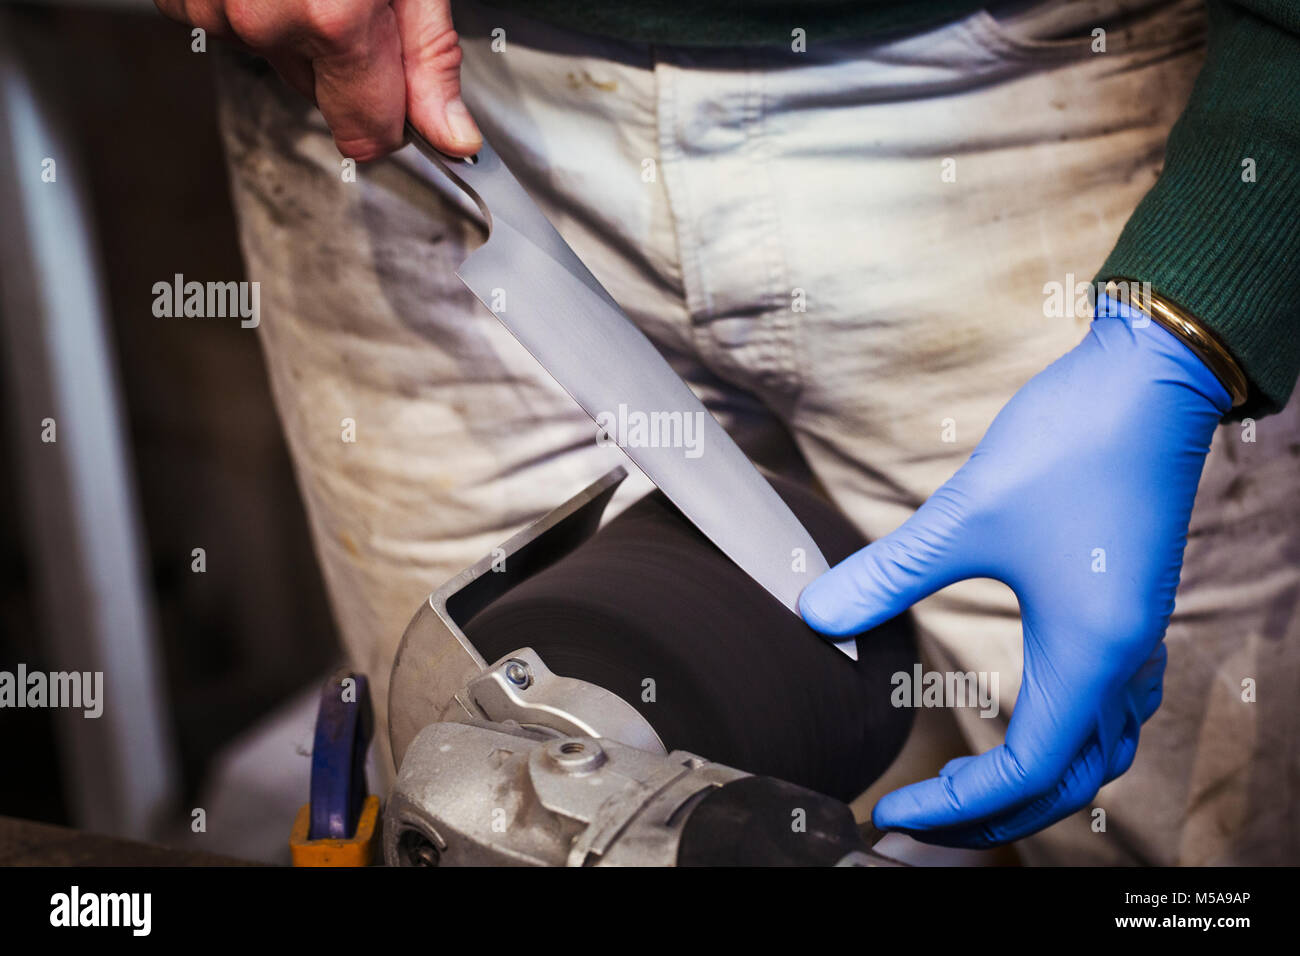 Close up of a craftsman's hand in a blue glove, sharpening and honing the tip of a knife blade on a sanding - Stock Image